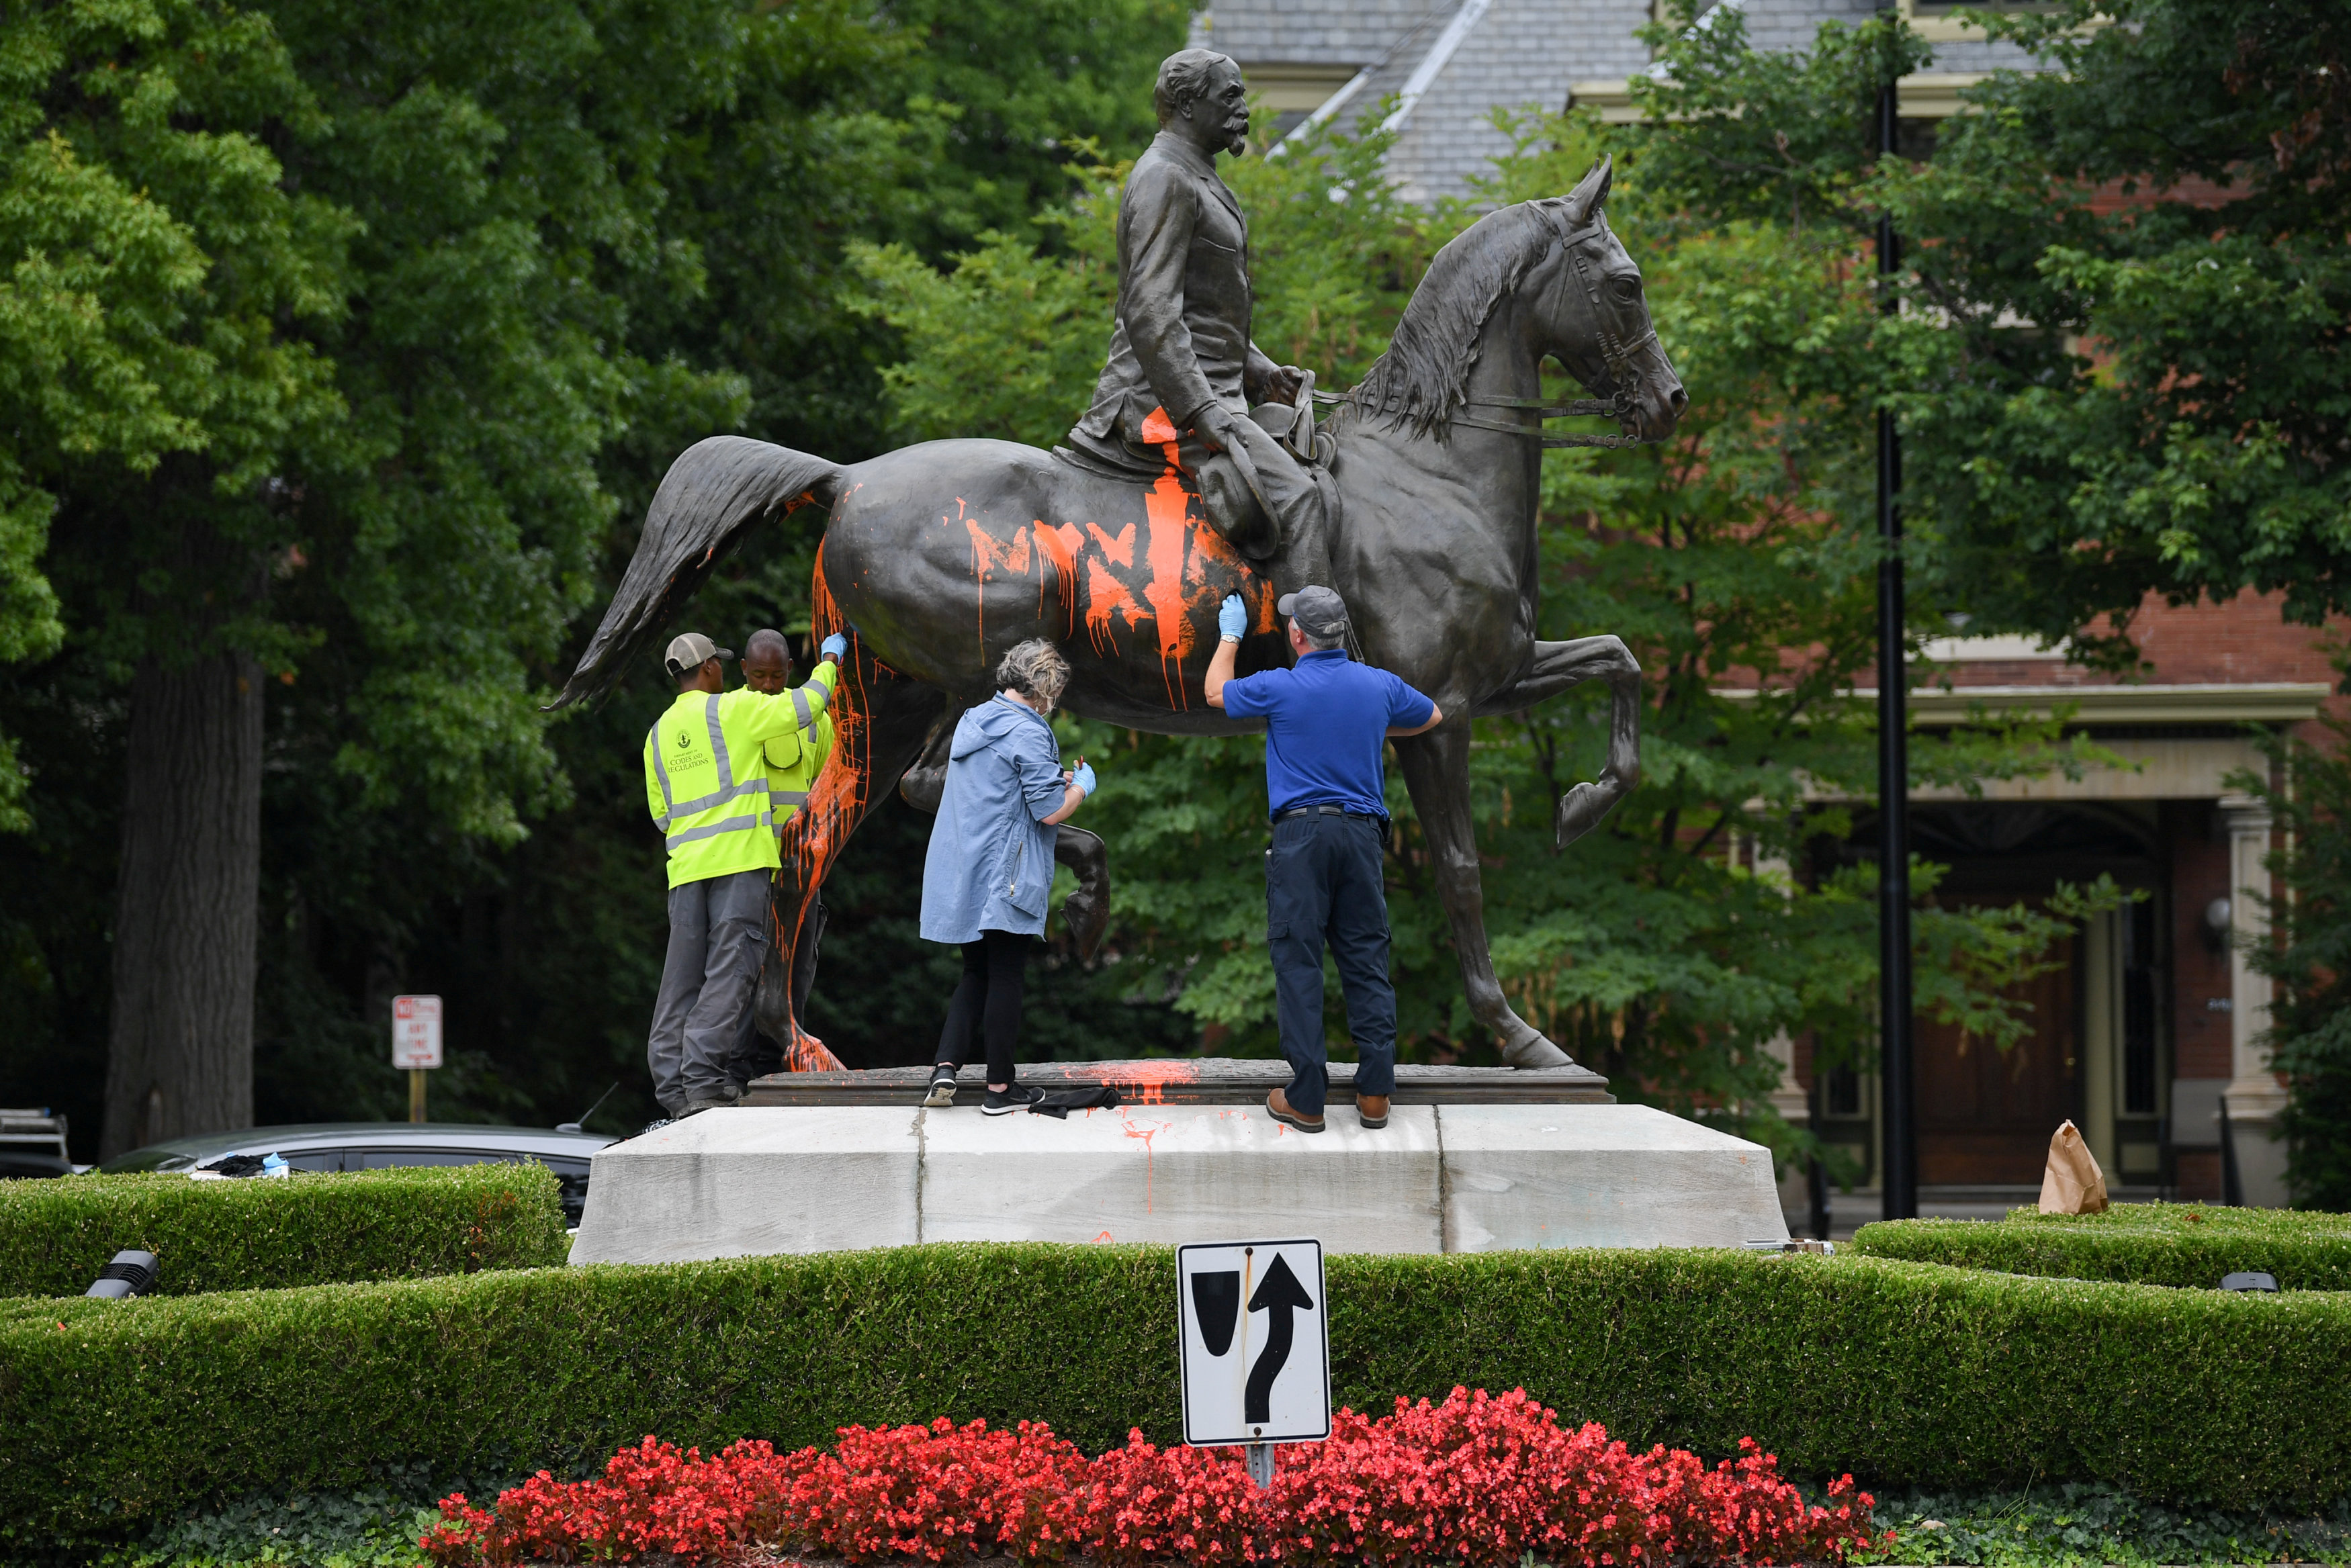 Undeterred by violence, U.S. cities ramp up removal of Confederate statues